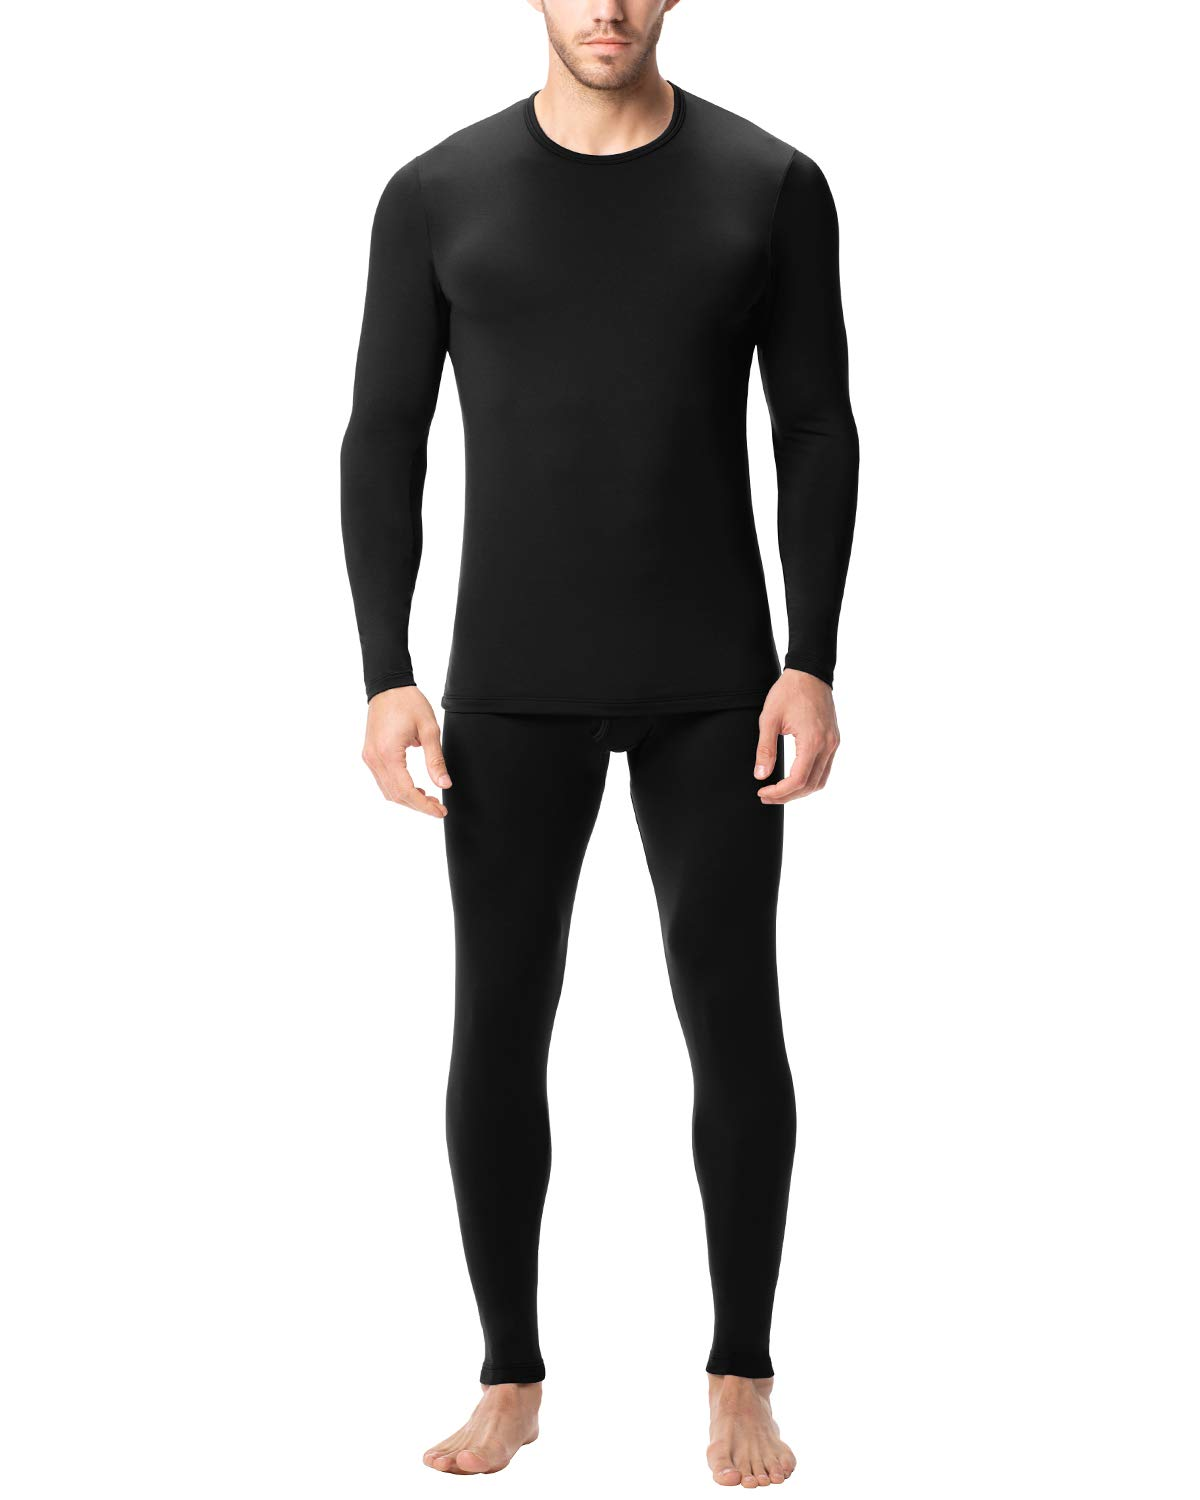 LAPASA Men's Lightweight Thermal Underwear Long John Set Fleece Lined Base Layer Top and Bottom (X-Large, Black) by LAPASA